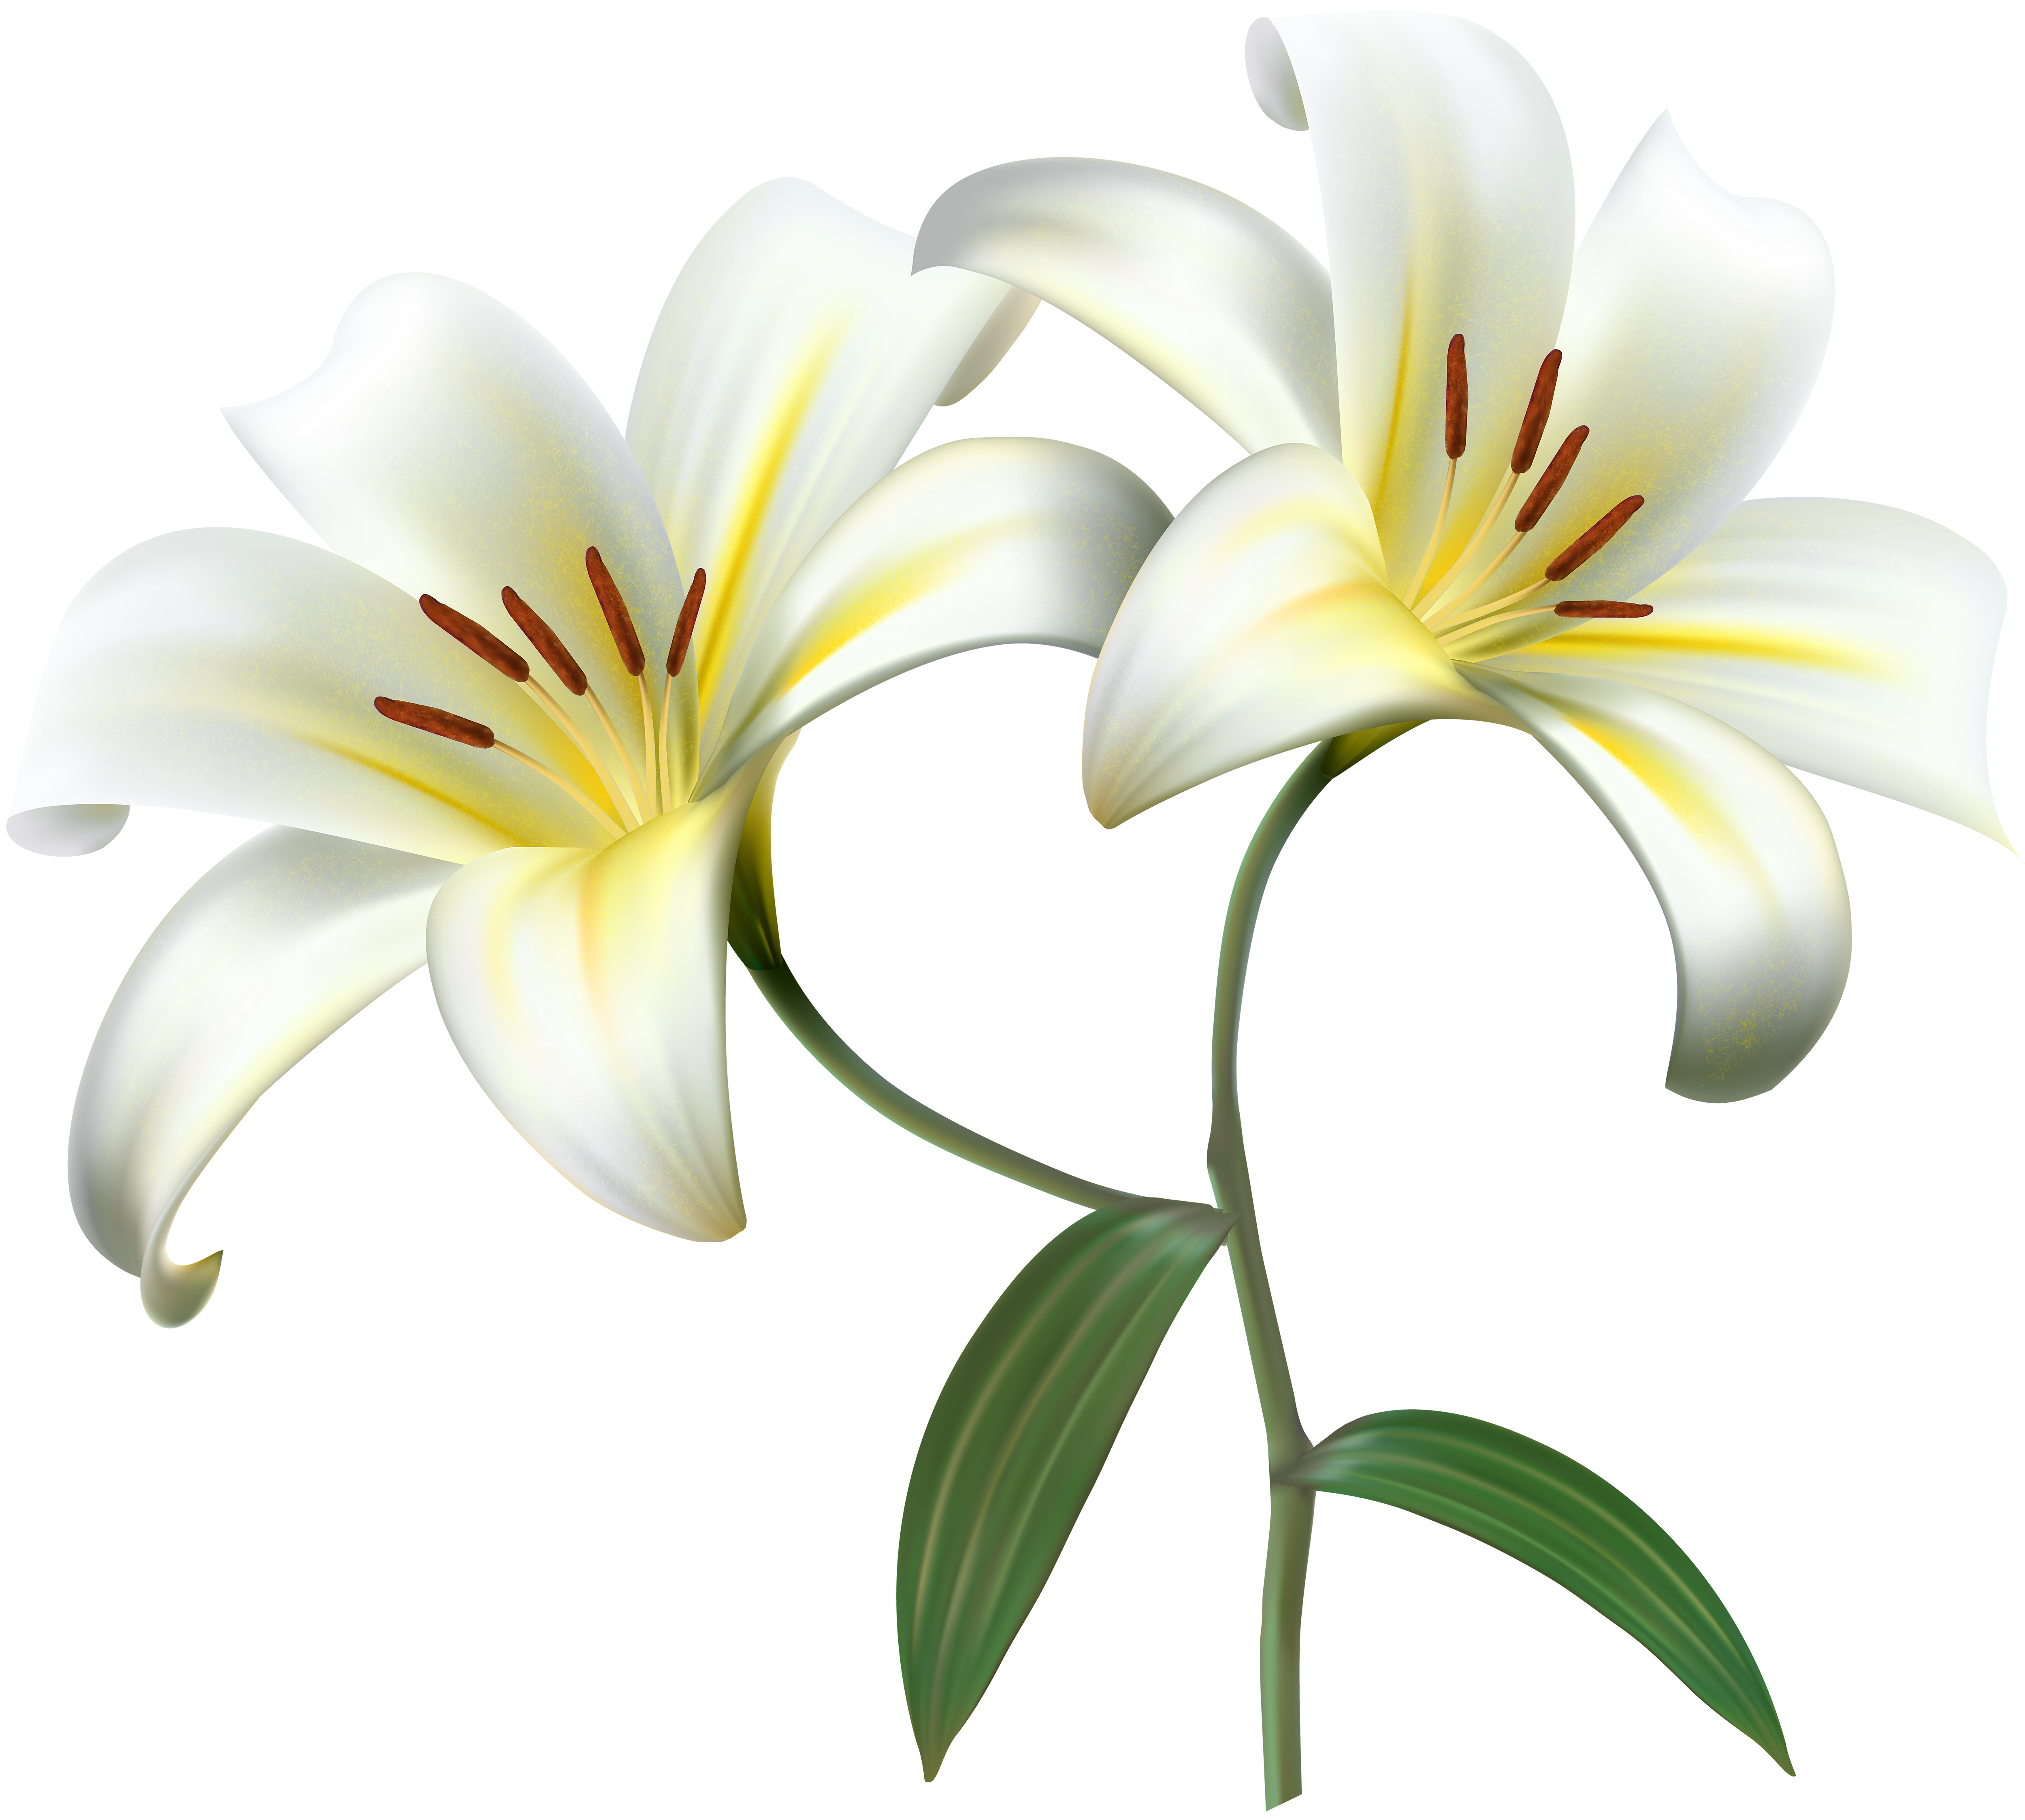 White Lilium Flower Decorative Transparent Image Gallery Yopriceville High Quality Images And Transparent Png Free Clipa Lilium Flower White Lilium Lilium